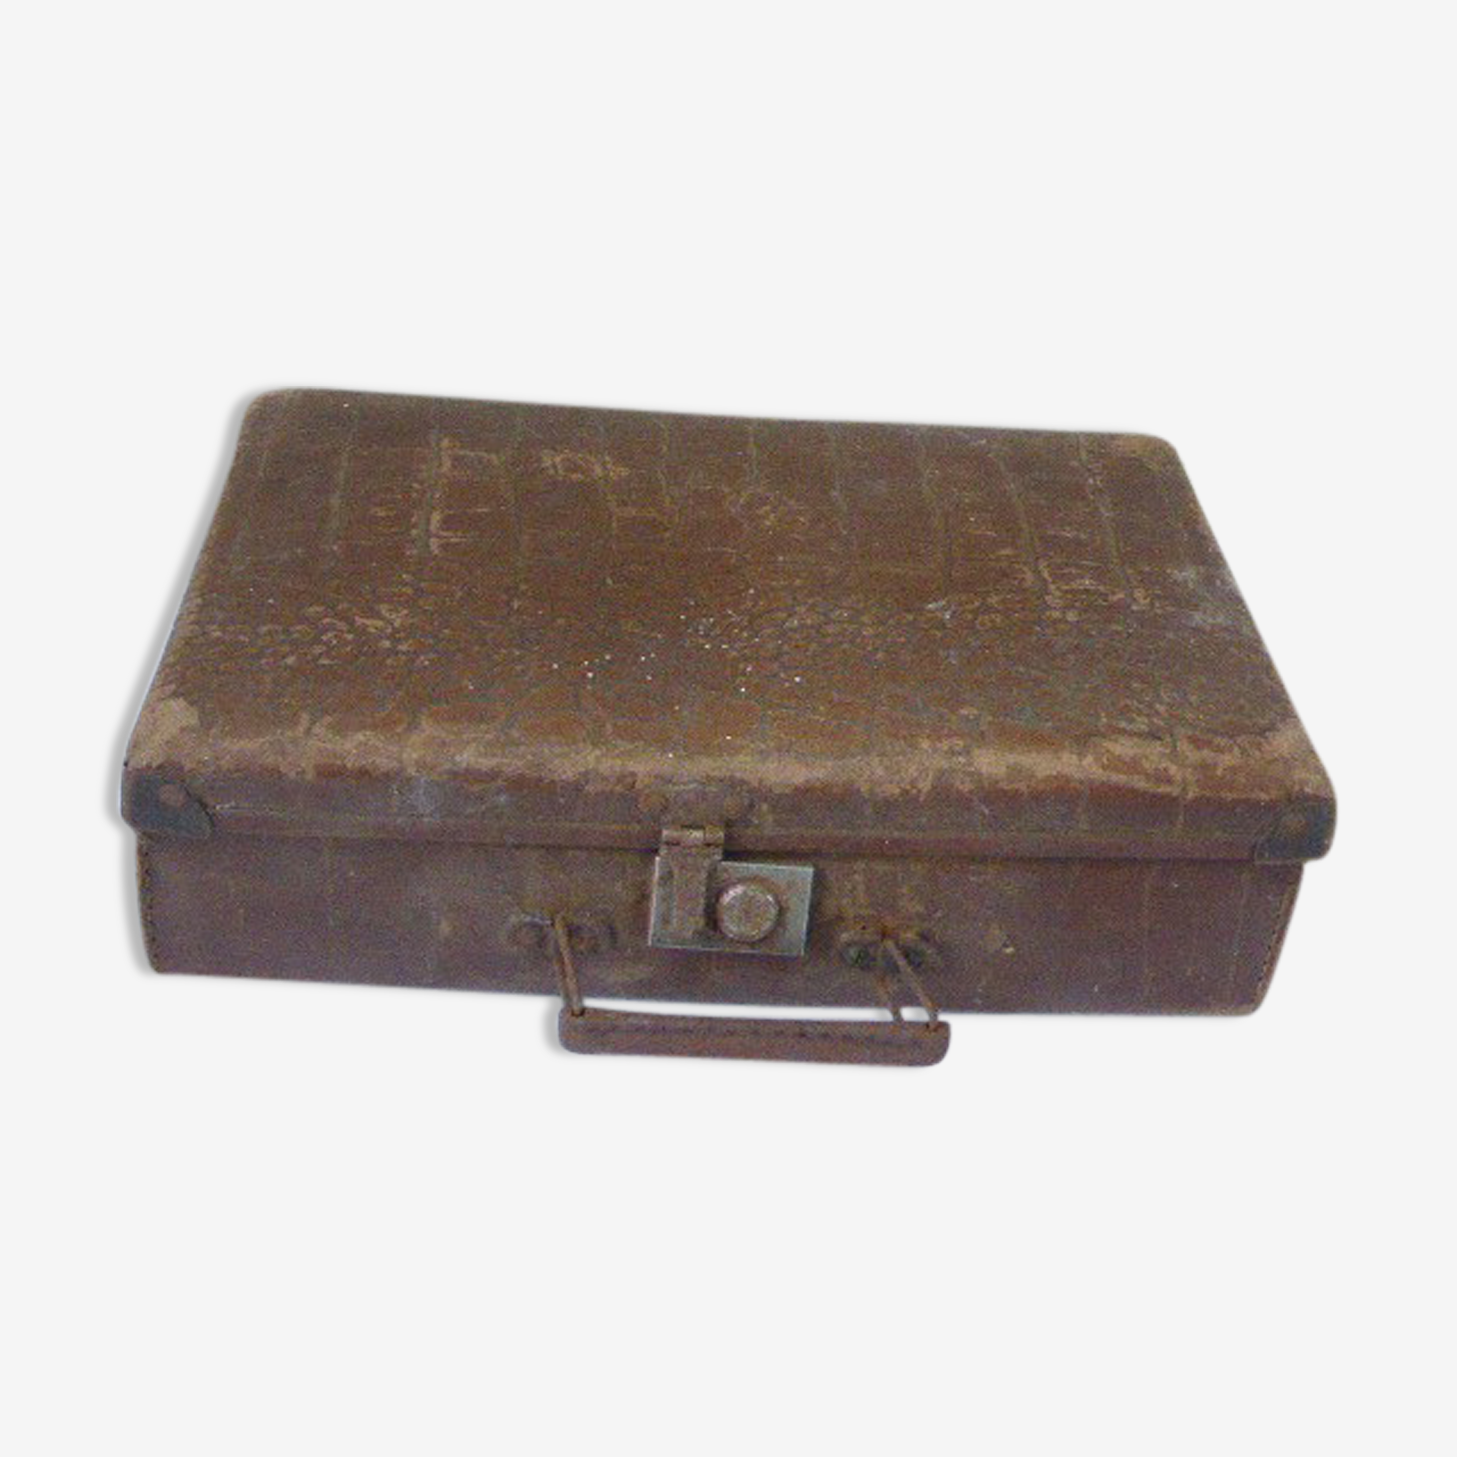 Suitcase for child in brown cardboard